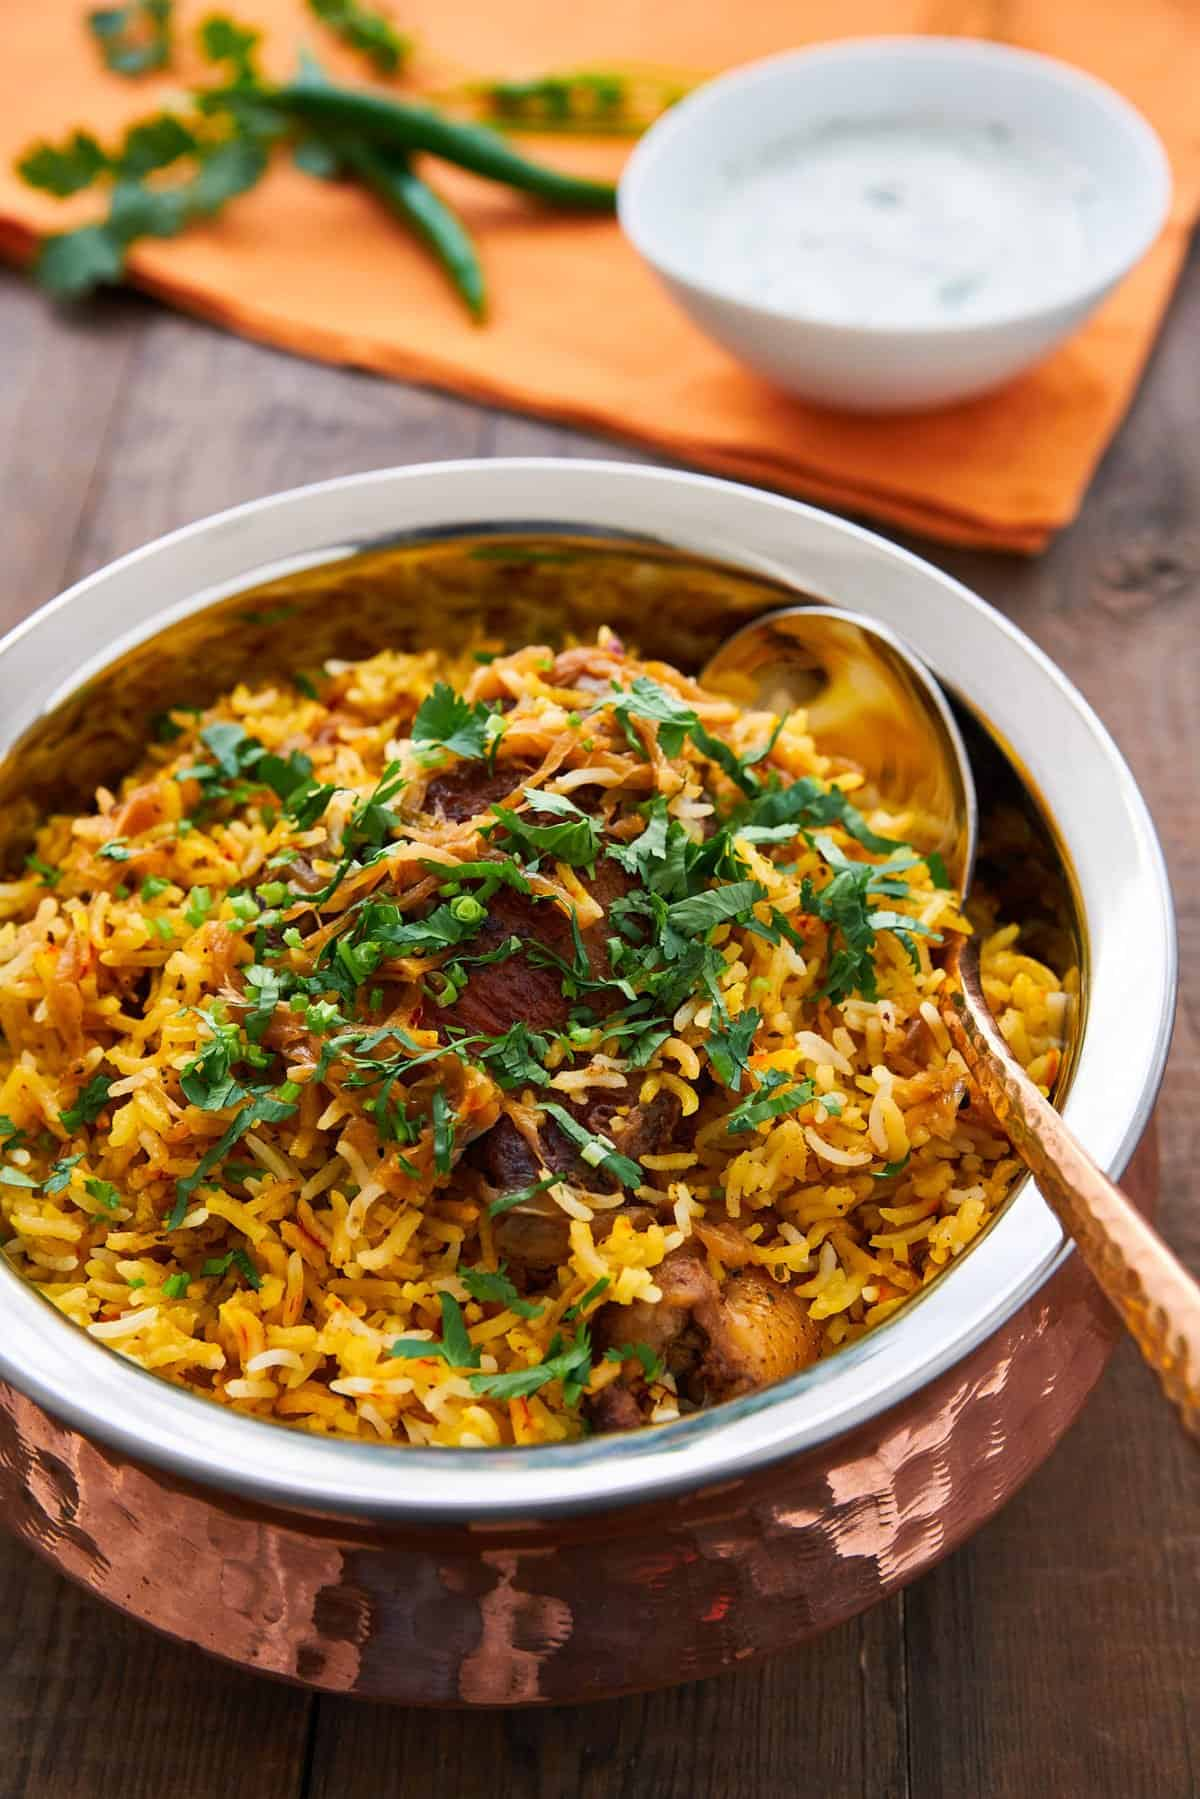 Chicken Biryani is a delciious savory rice dish loaded with spicy marinated chicken, caramelized onions, and flavorful saffron rice.